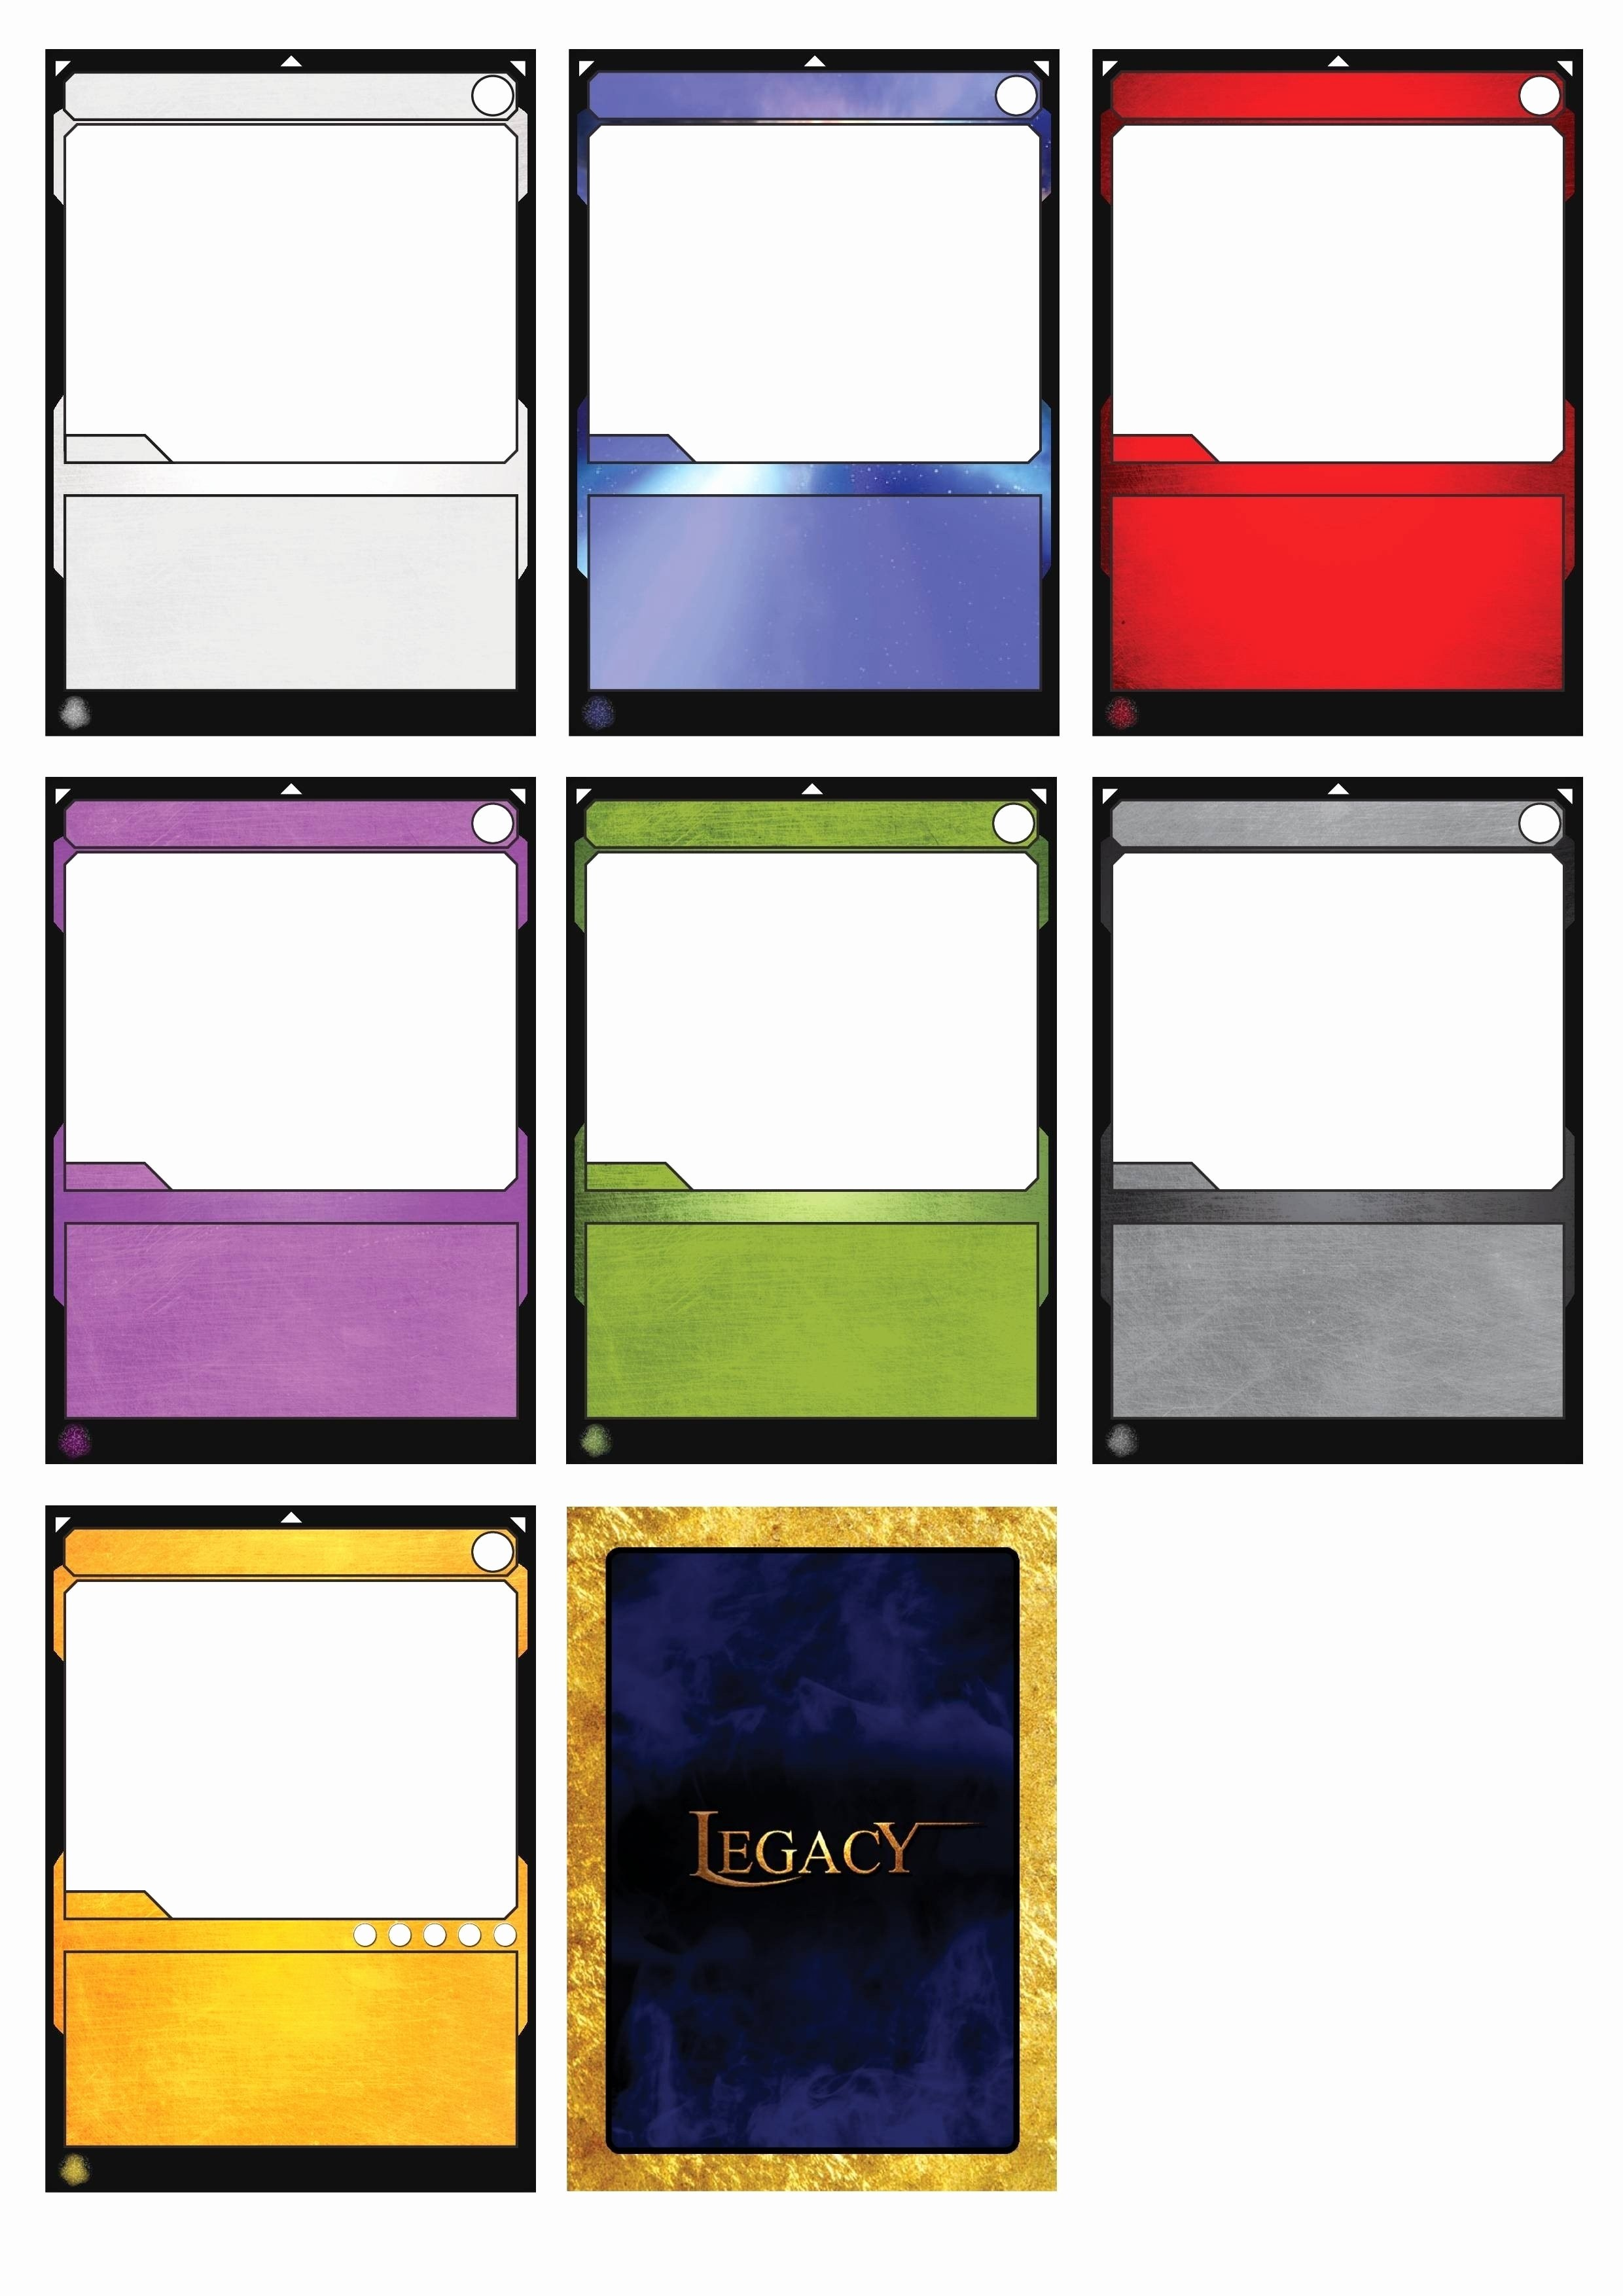 Card Game Template New  Elegant Trading Card Template Word  Iggms With Regard To Trading Card Template Word